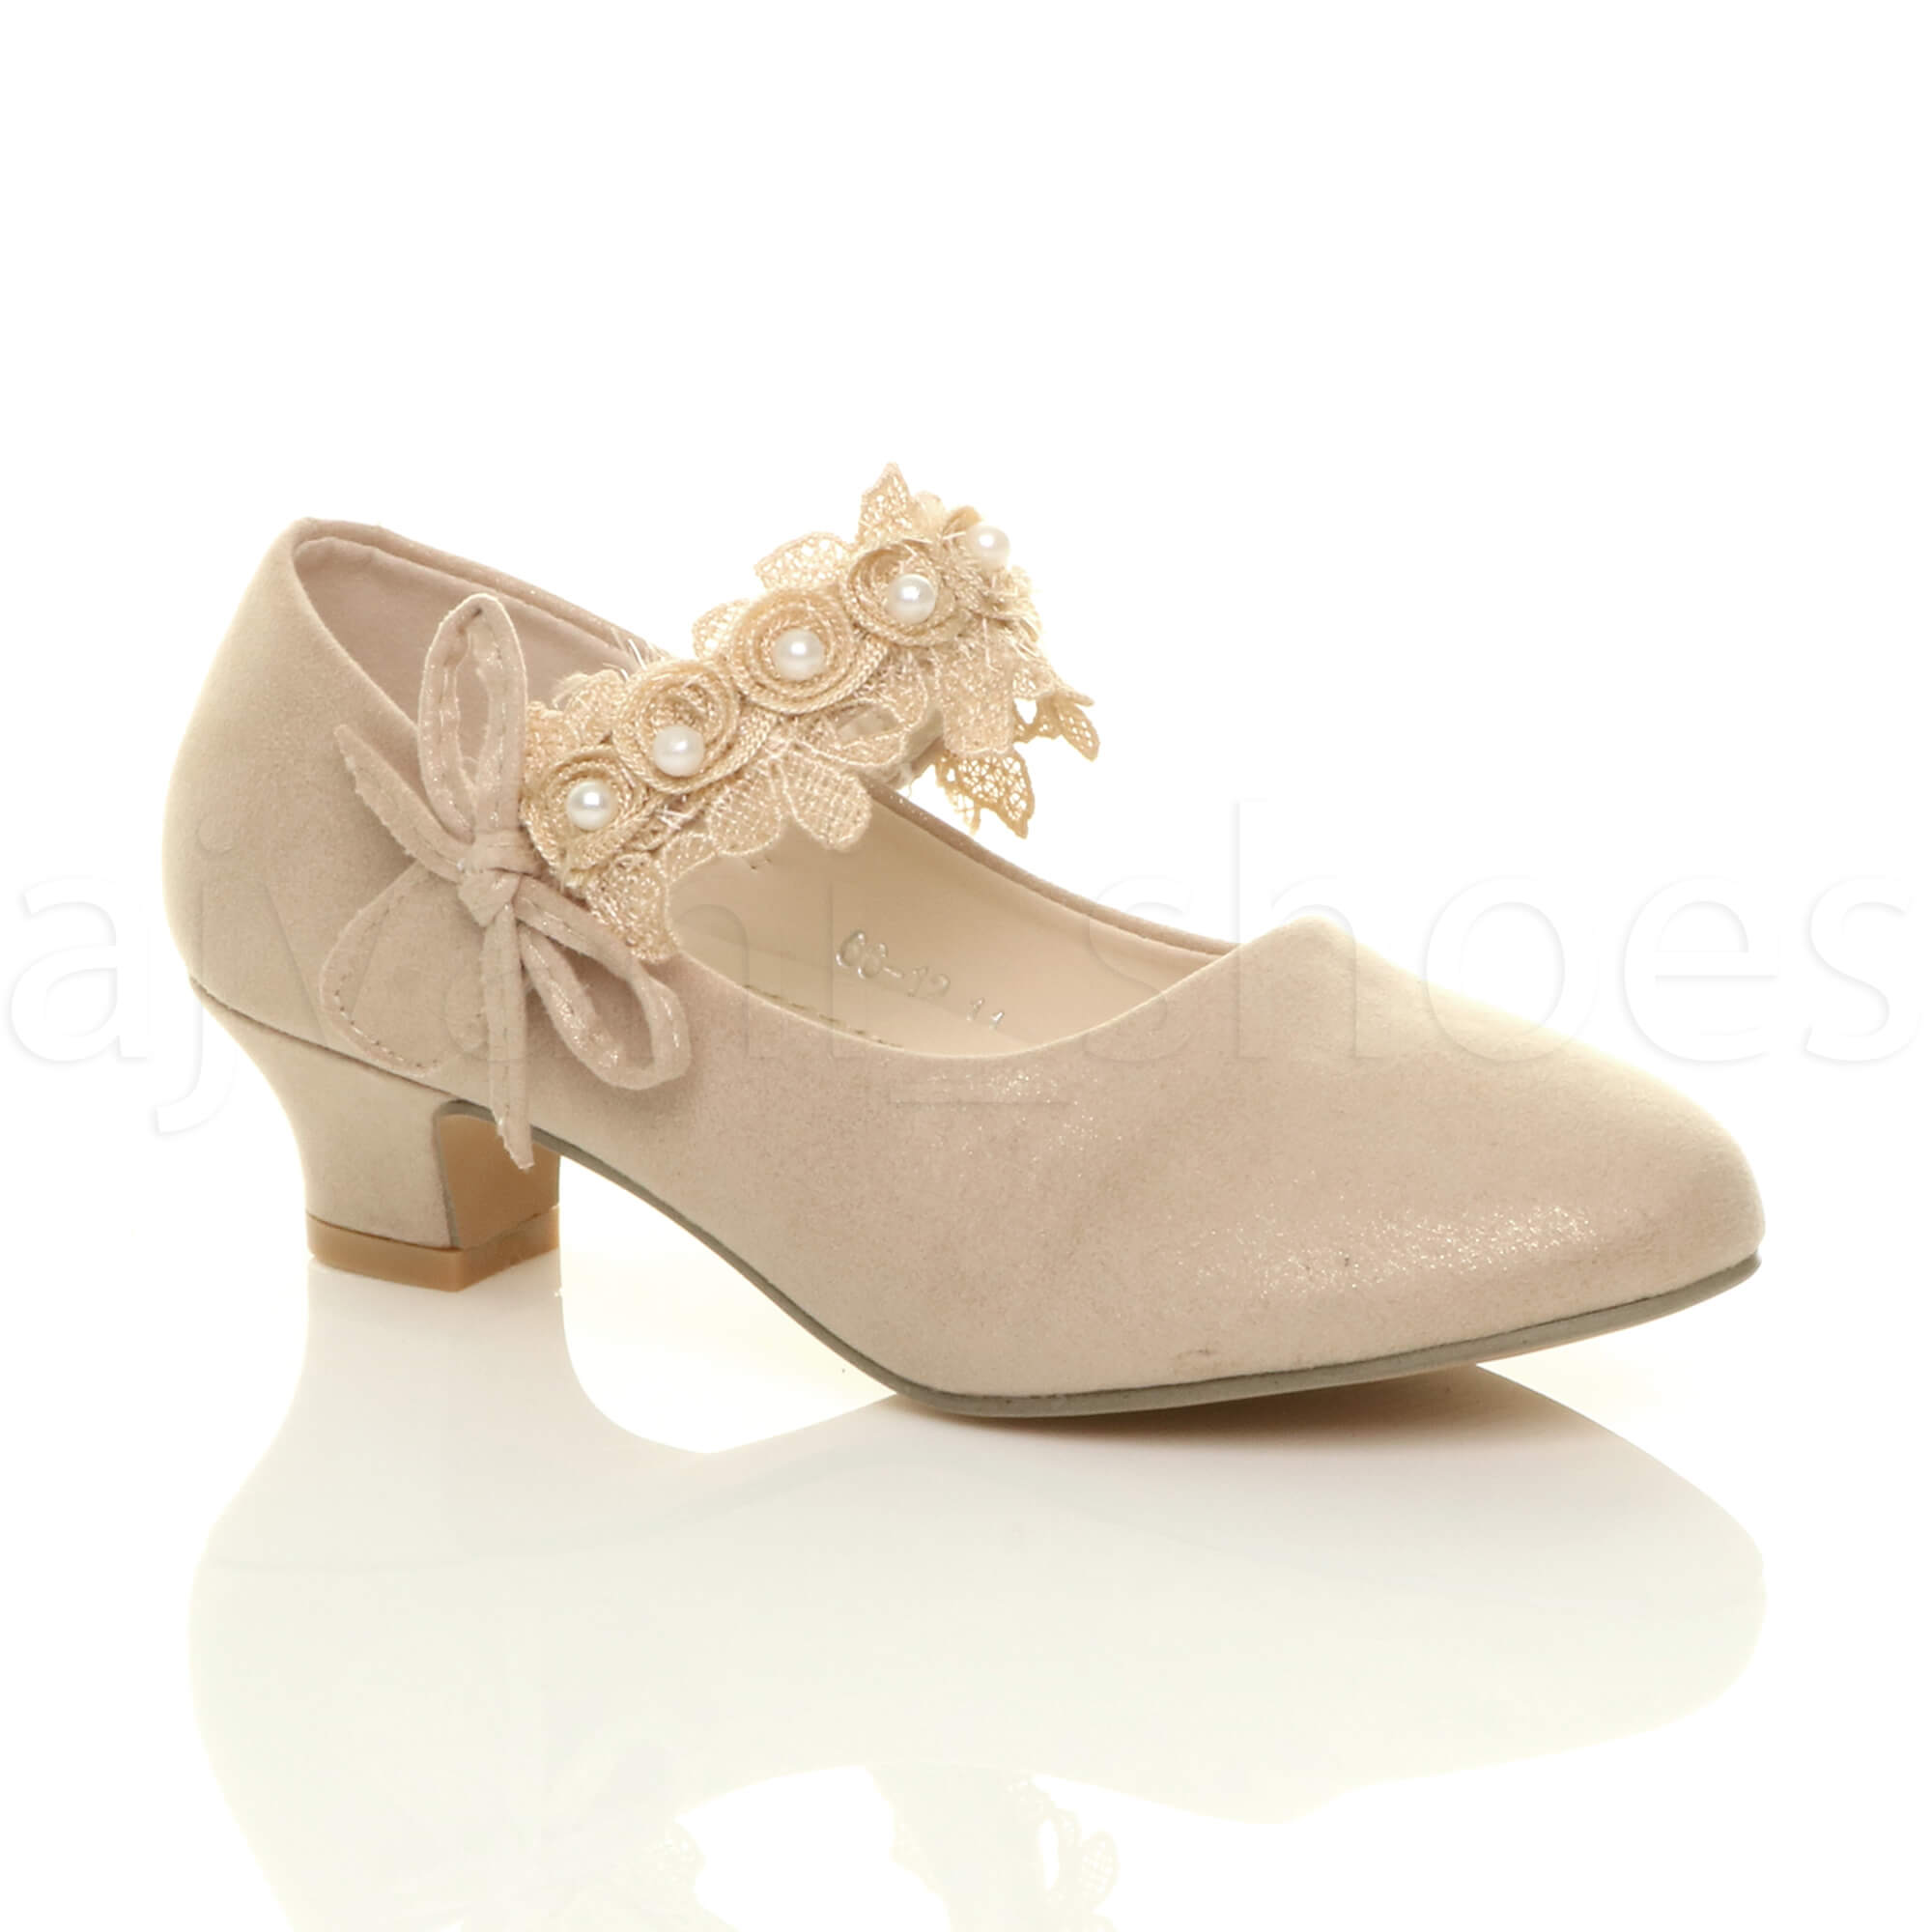 a9b1dddcff03bf Details about GIRLS KIDS CHILDRENS LOW HEEL LACE STRAP MARY JANE PARTY  FORMAL SHOES SIZE